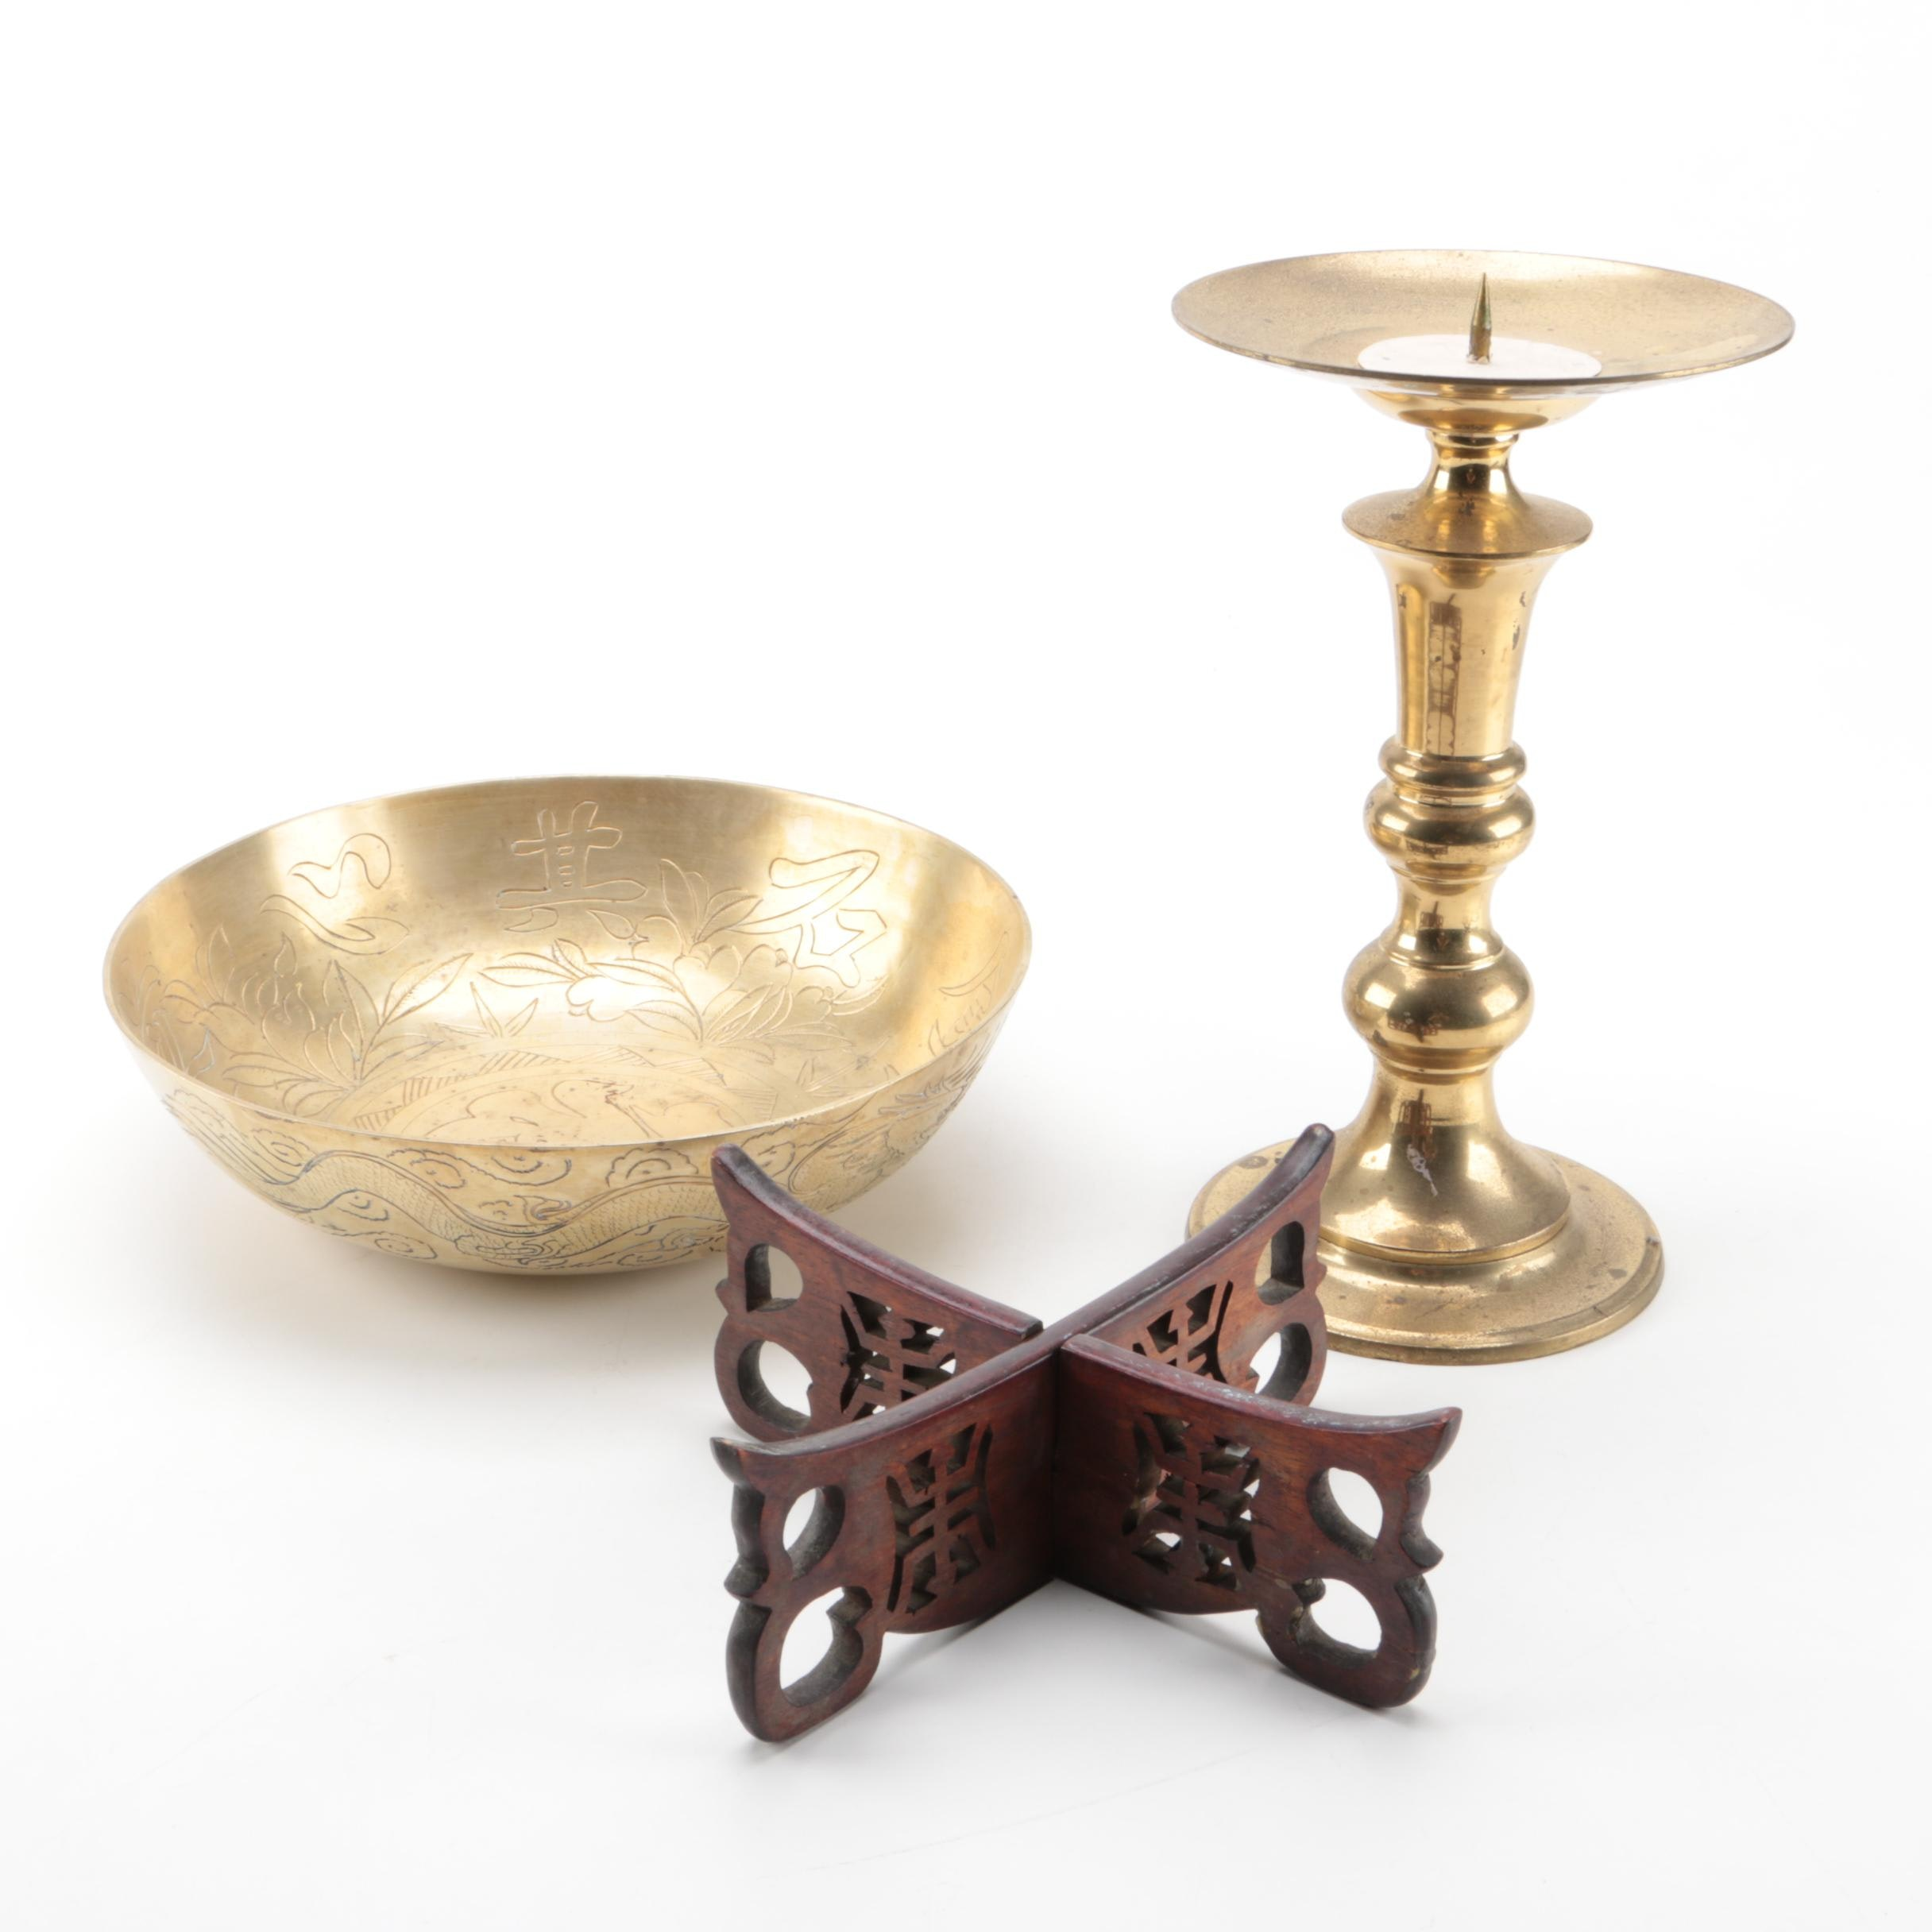 Brass Candle Holder, Bowl, and Wooden Stand